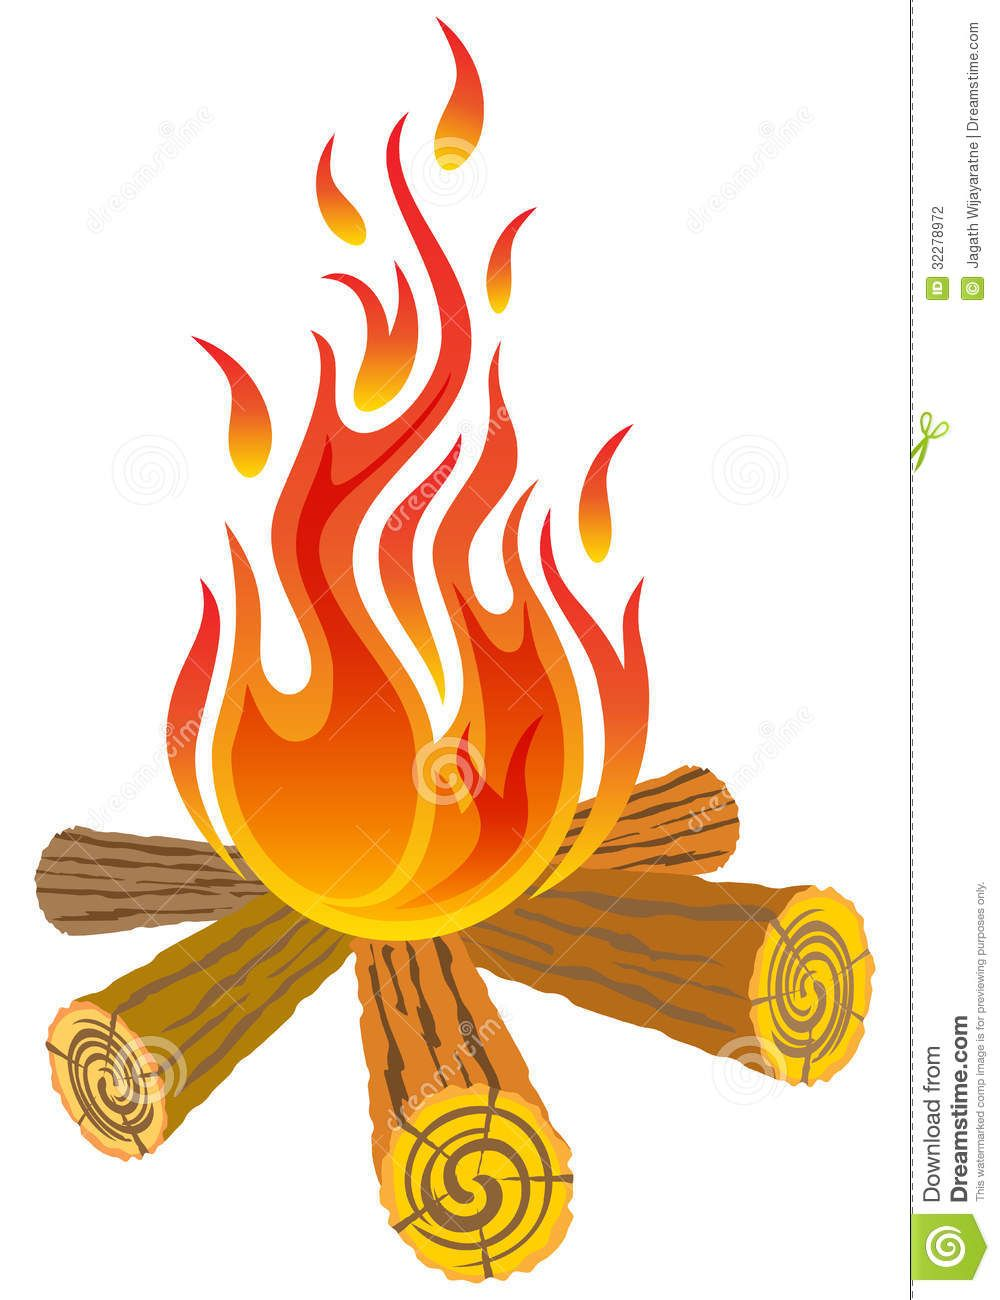 Campfire clipart fire pit. Around the camp isolated